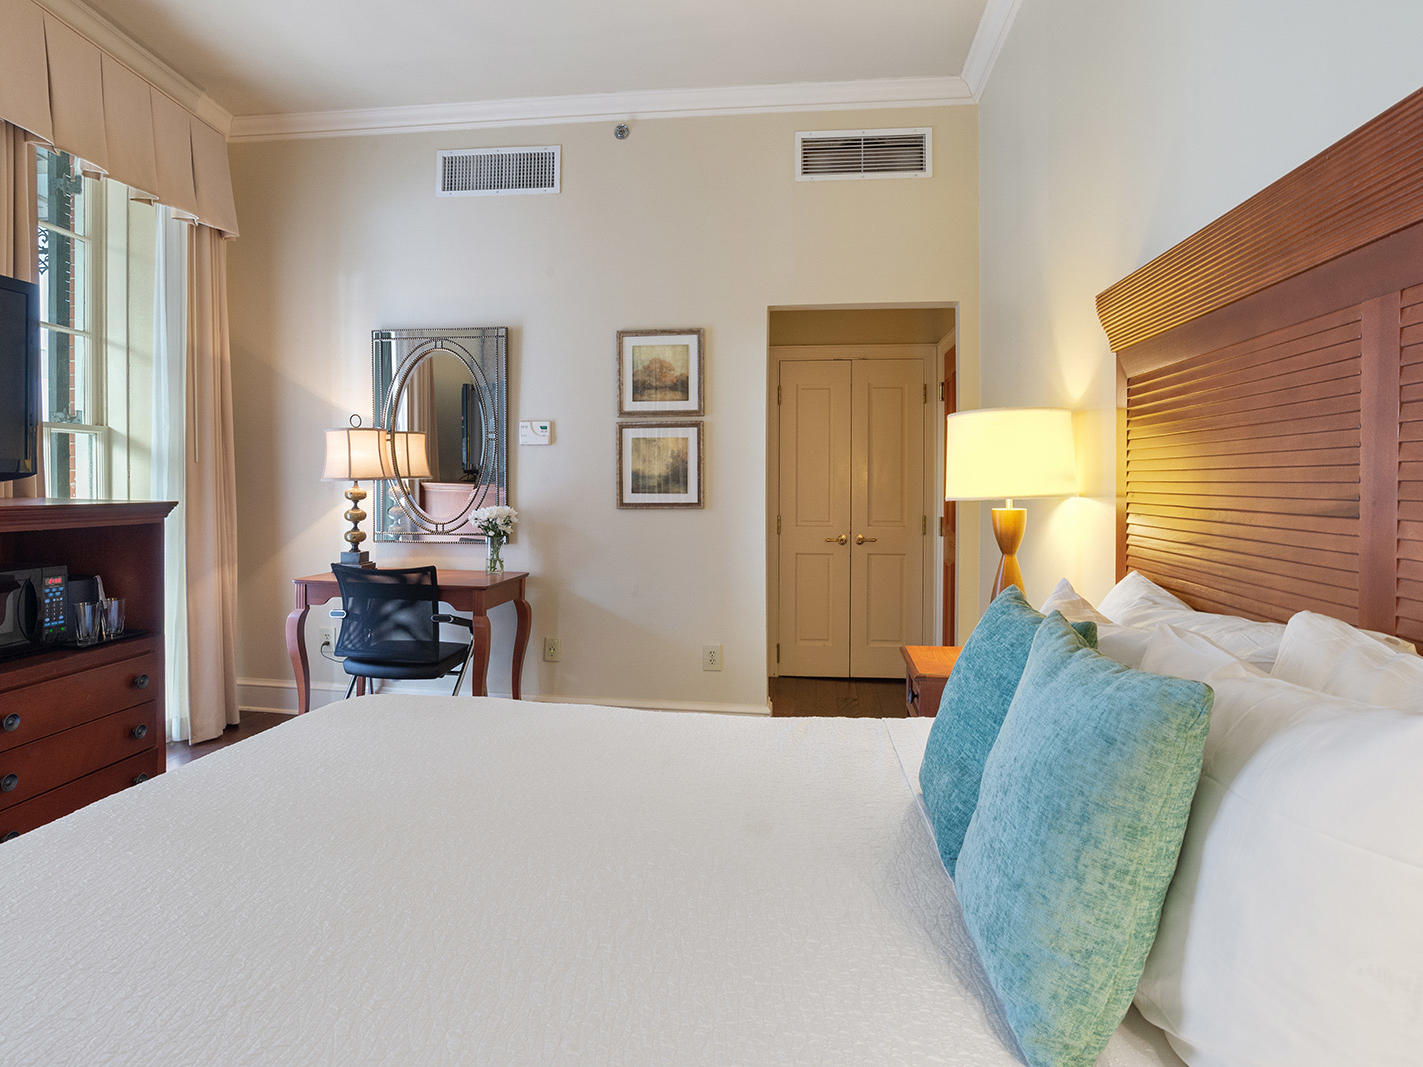 King Suite with one bed at St. James Hotel